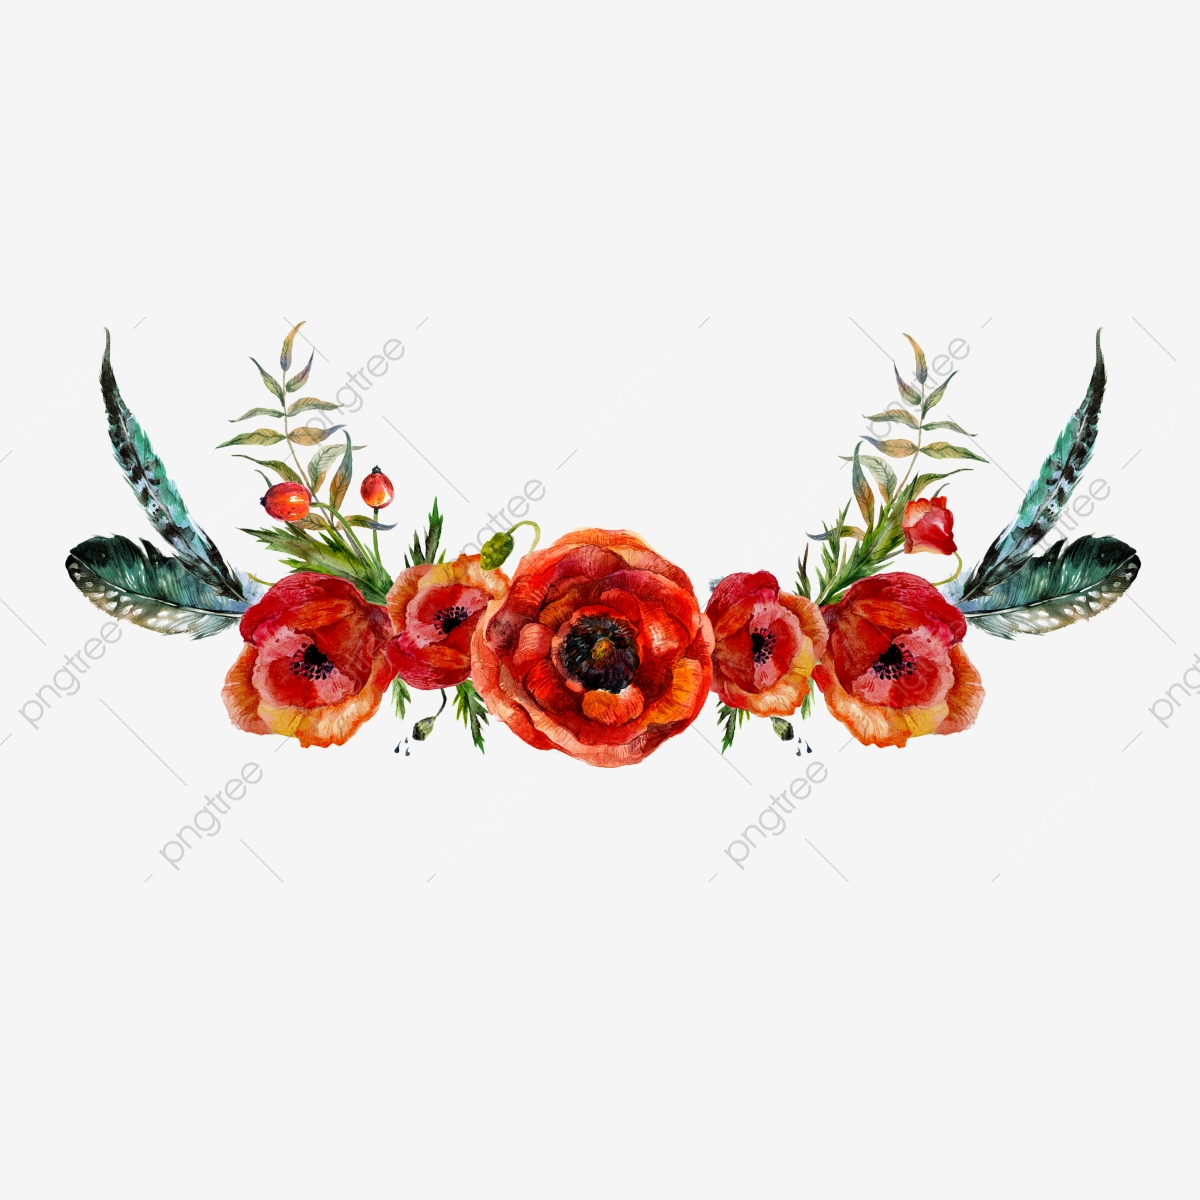 Flower Crown Png Images Vector And Psd Files Free Download On Pngtree Download 25,657 flower crown free vectors. https pngtree com freepng red flower 3703582 html